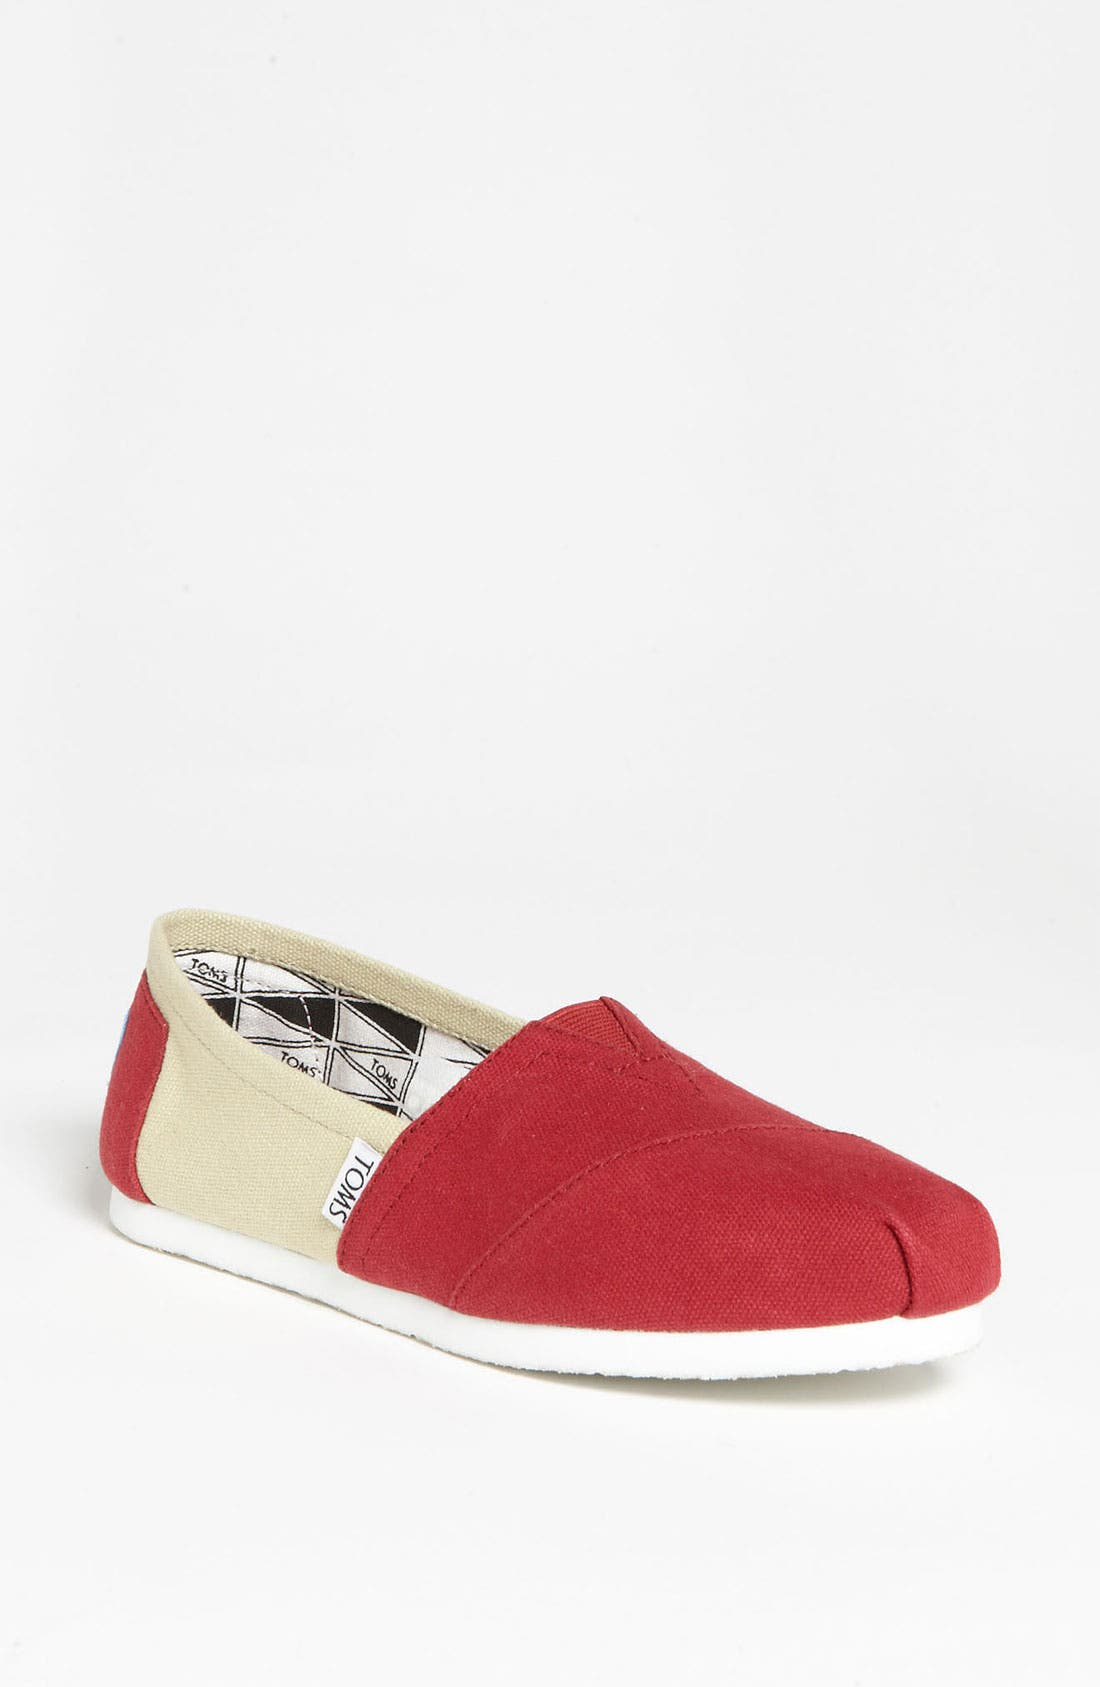 Alternate Image 1 Selected - TOMS 'Campus Classics - Florida State' Slip-On (Women)